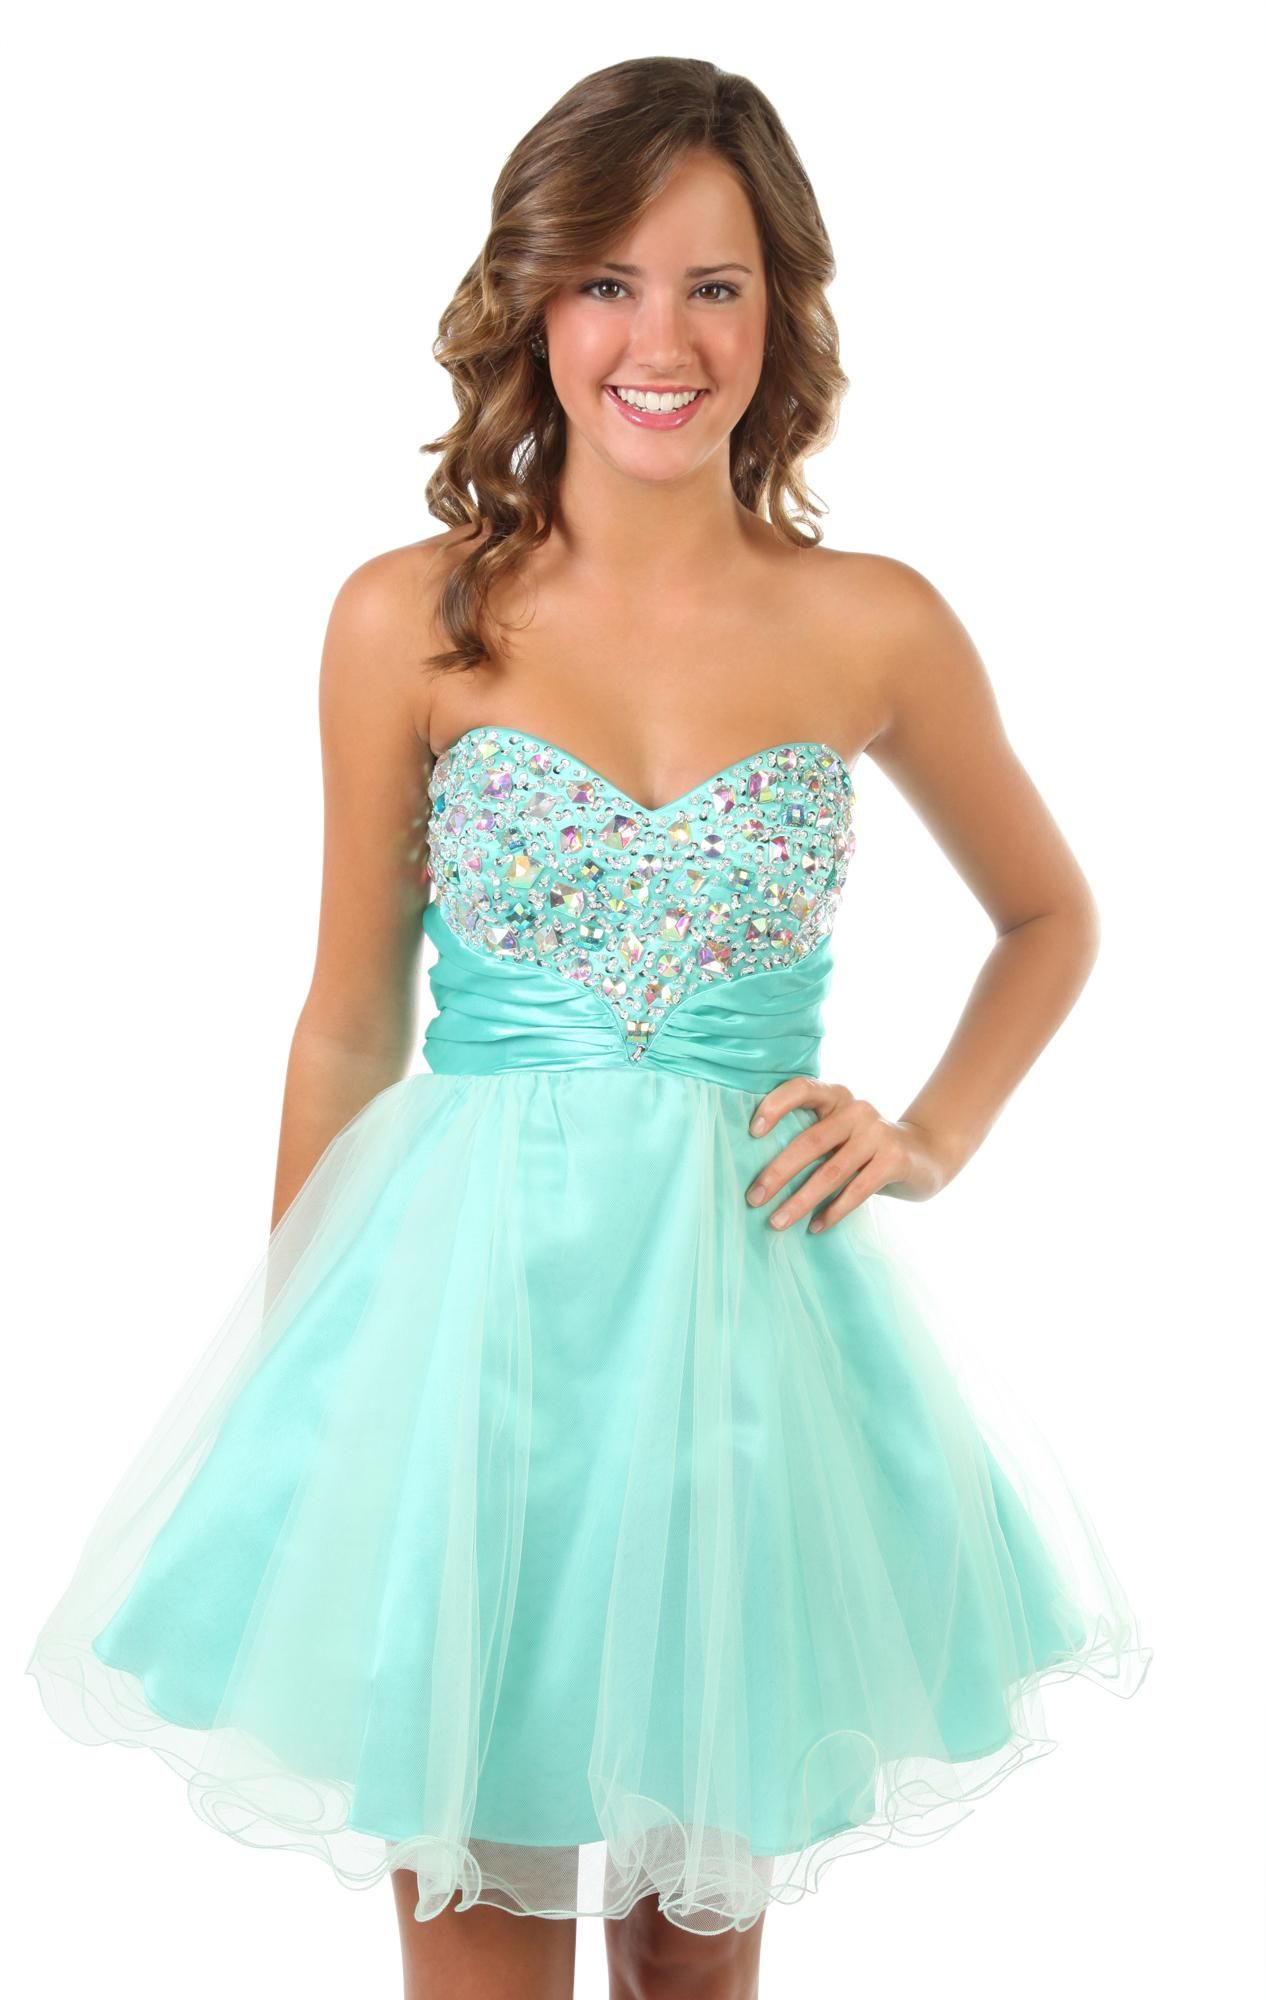 chunky stone two tone mesh strapless party #prom #dress $84.50 | My ...